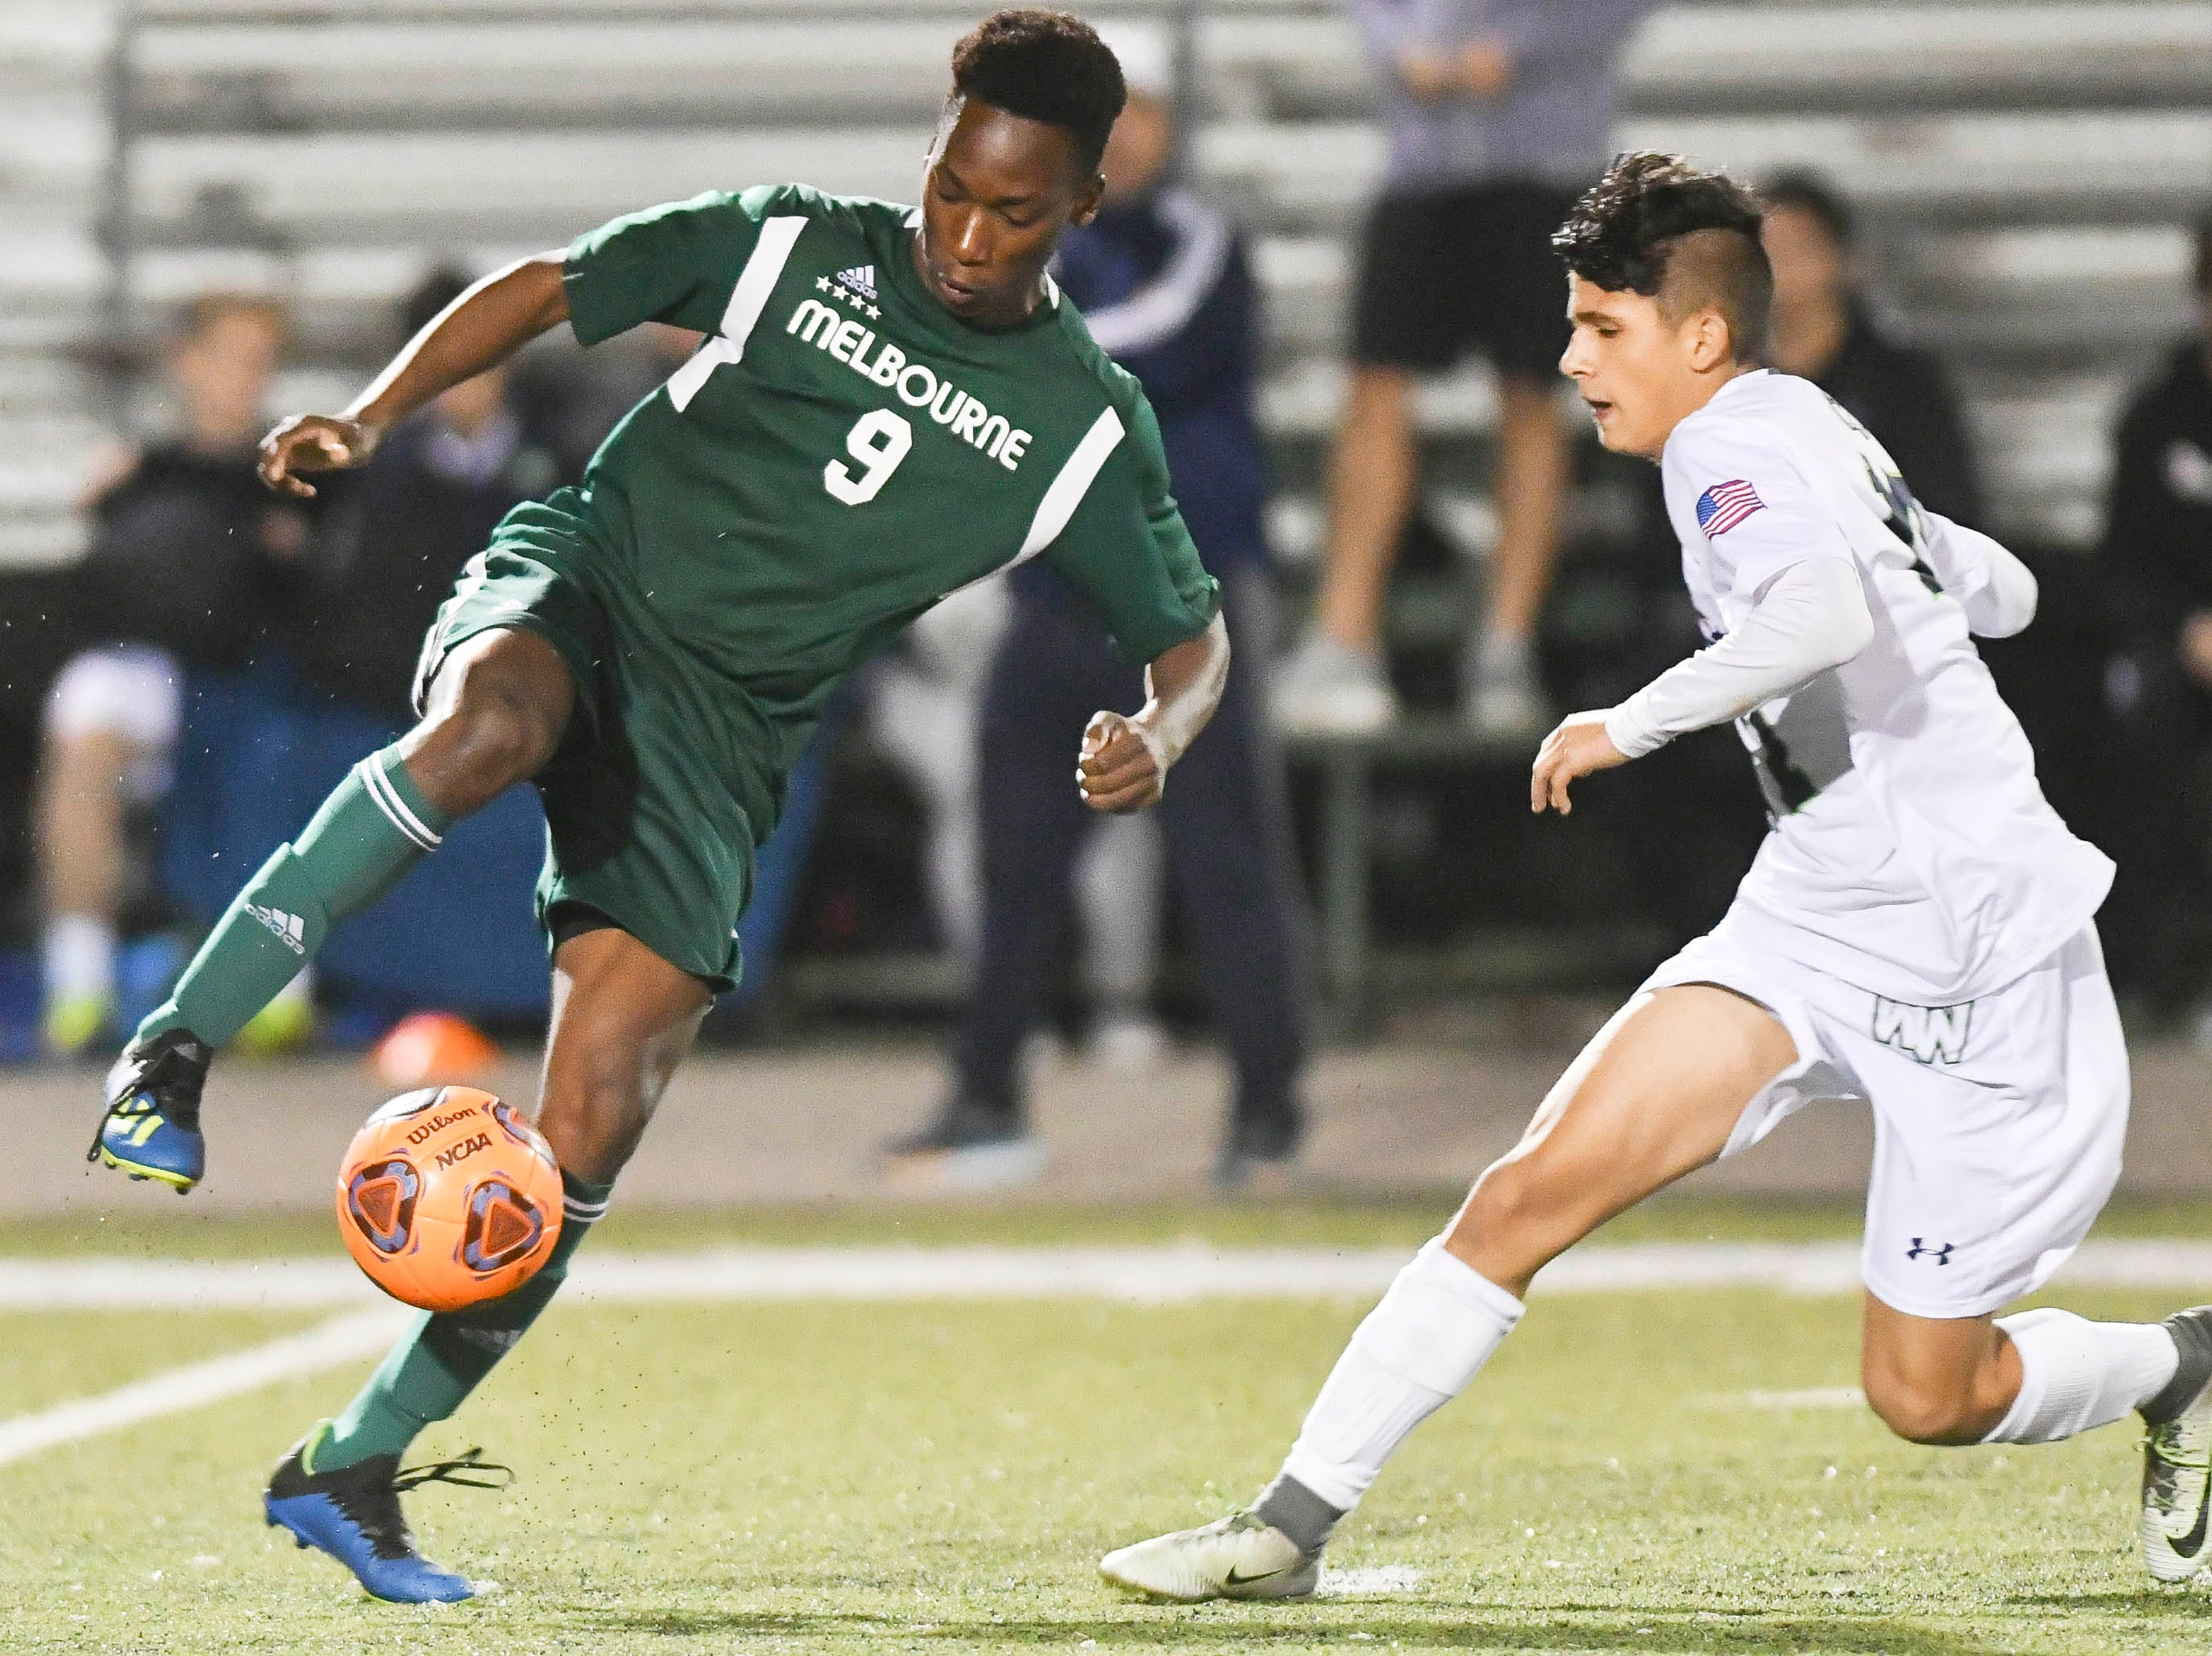 Melbourne's Osas Osaro maneuvers the ball around a Windermere defender during Saturday's Class 4A boys soccer regional semifinal.